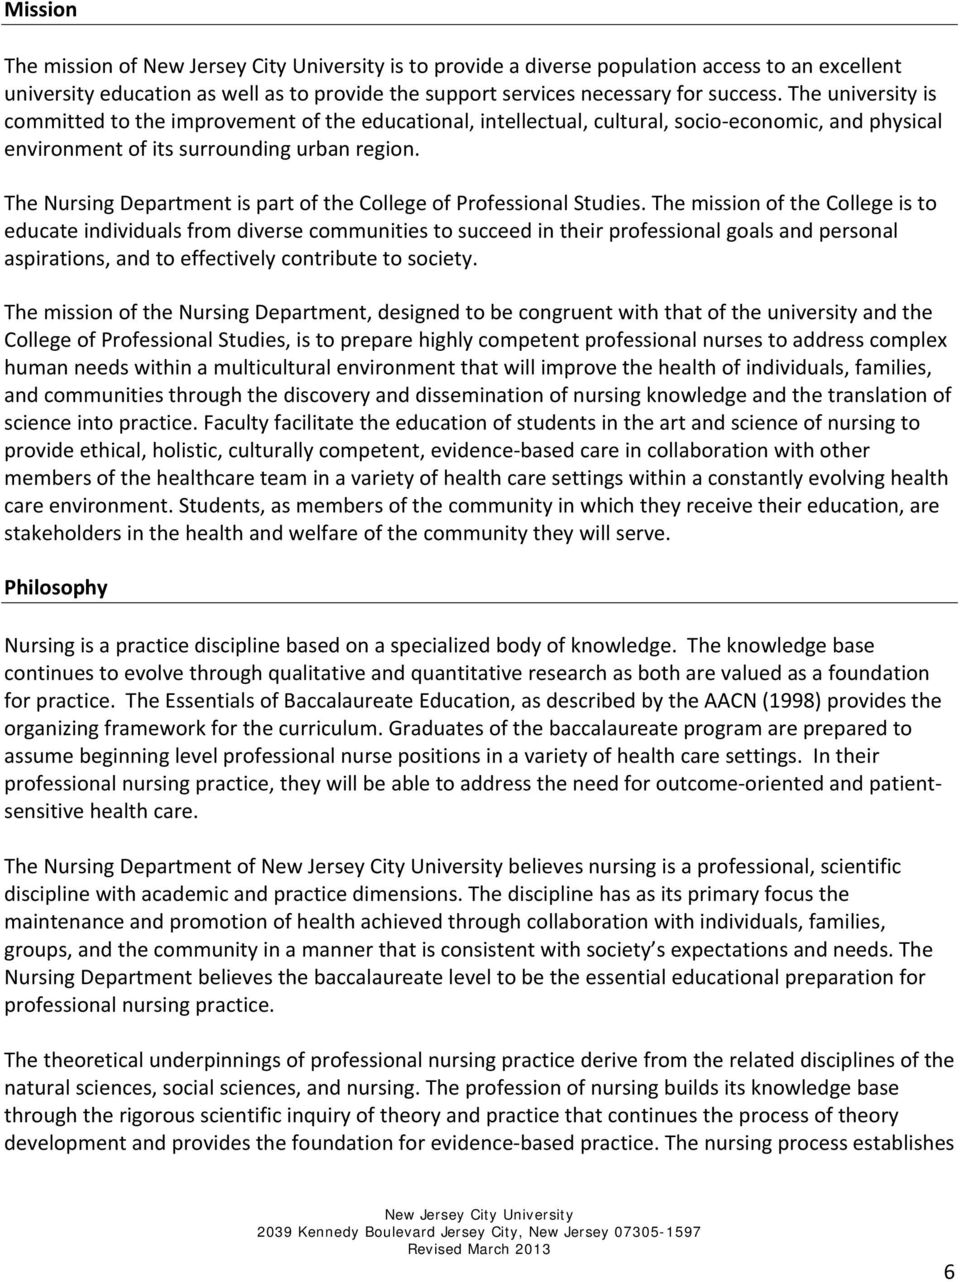 The Nursing Department is part of the College of Professional Studies.